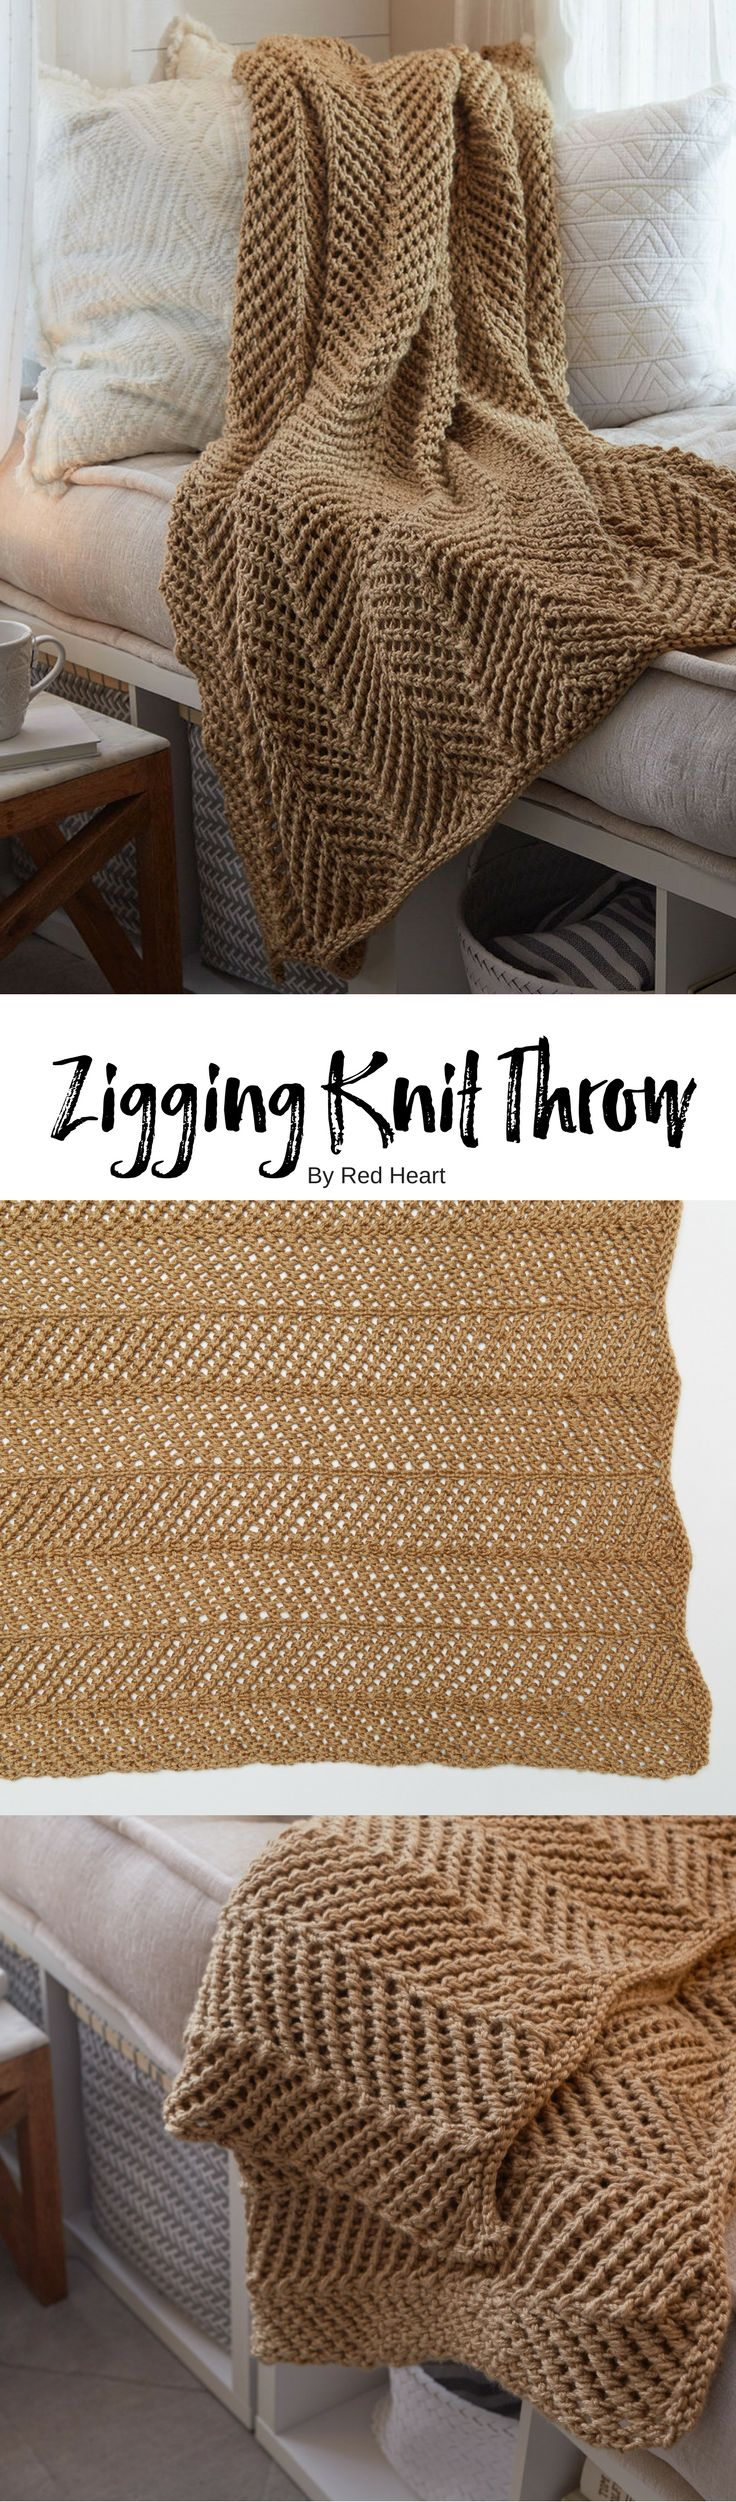 Zigging Knit Throw free knit pattern in Soft yarn.